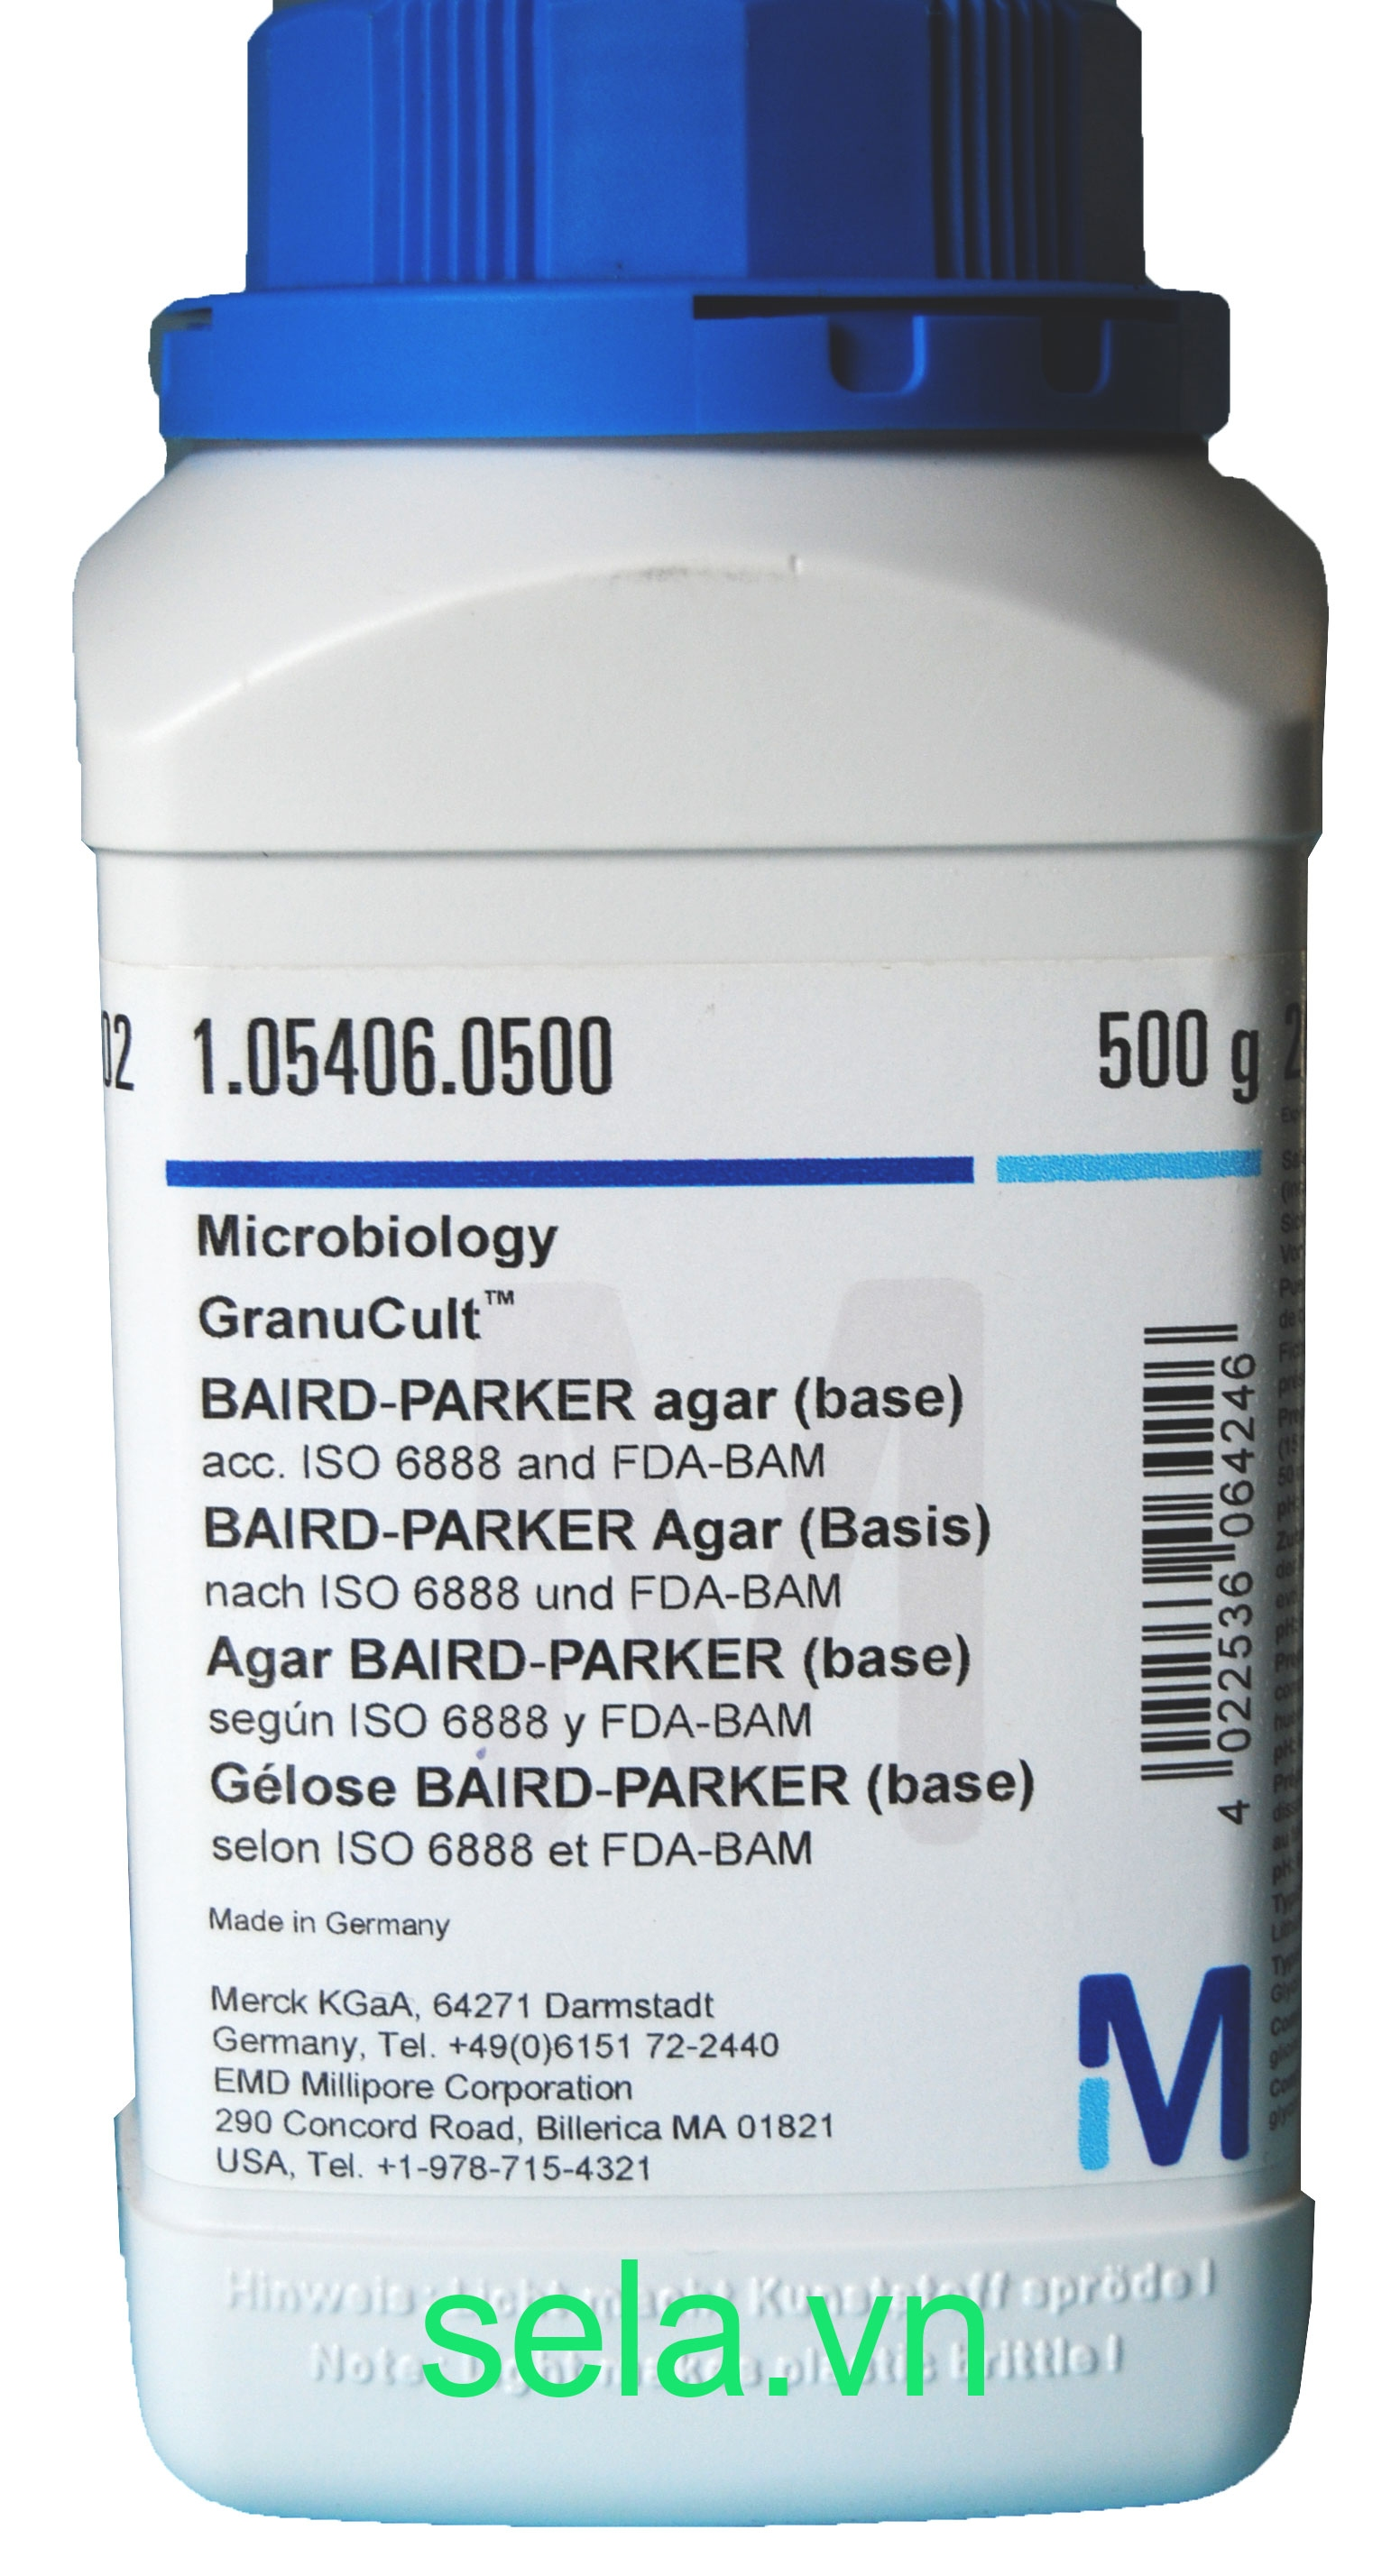 BAIRD-PARKER agar (base) acc. ISO 6888 and FDA-BAM